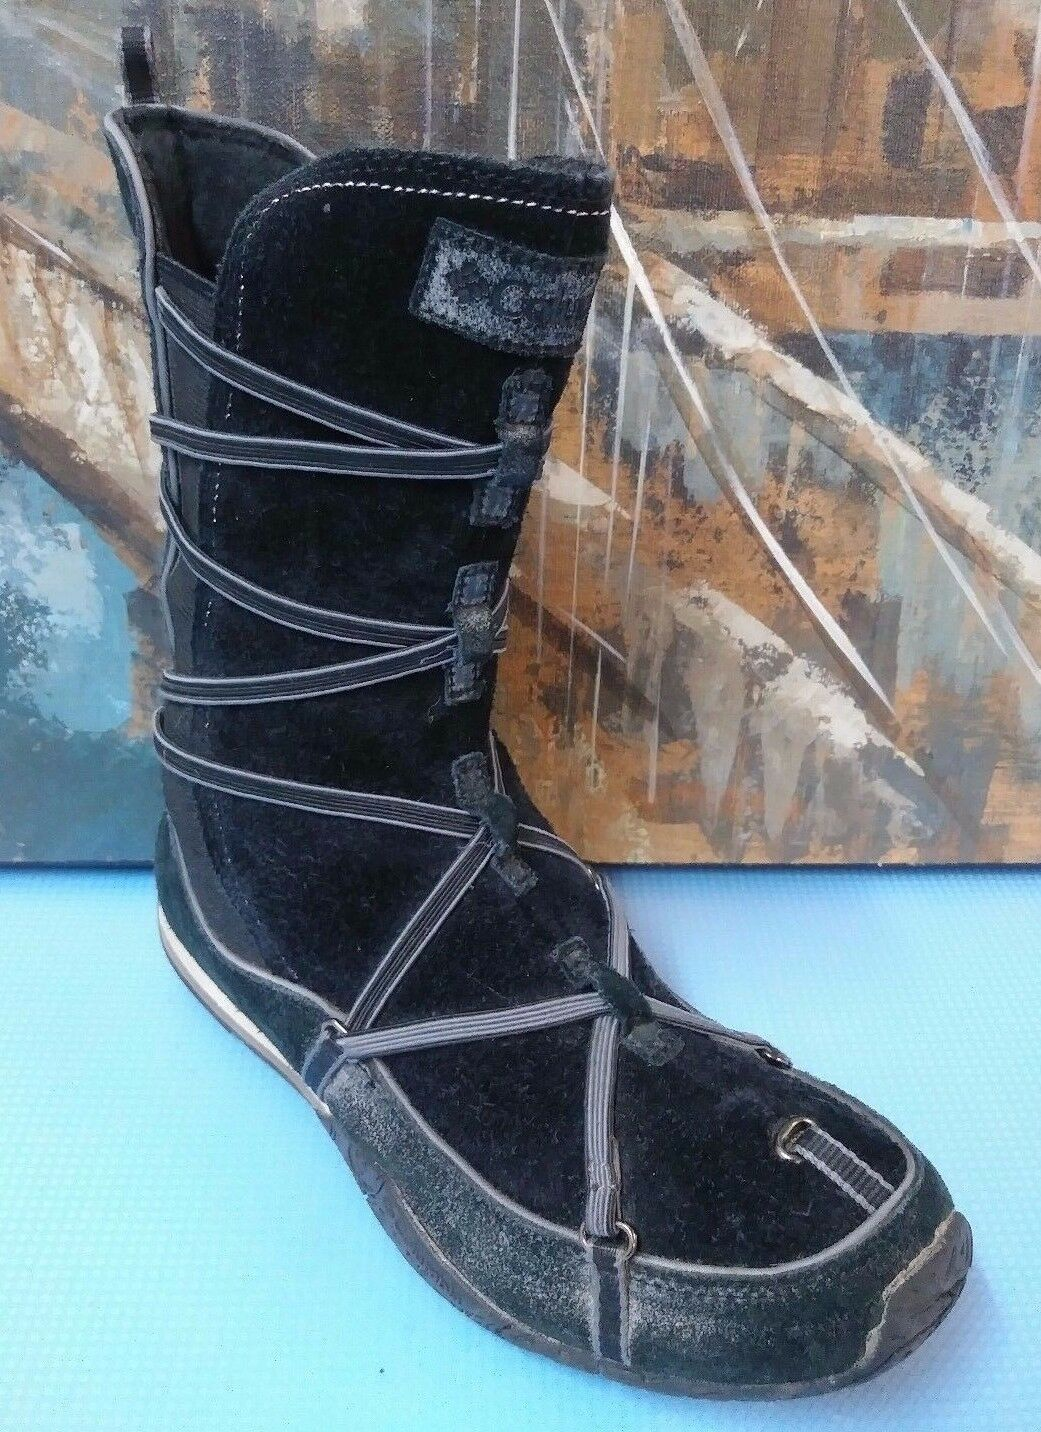 COLUMBIA 1020 WOMENS  SNOW   WINETR BOOTS size 7